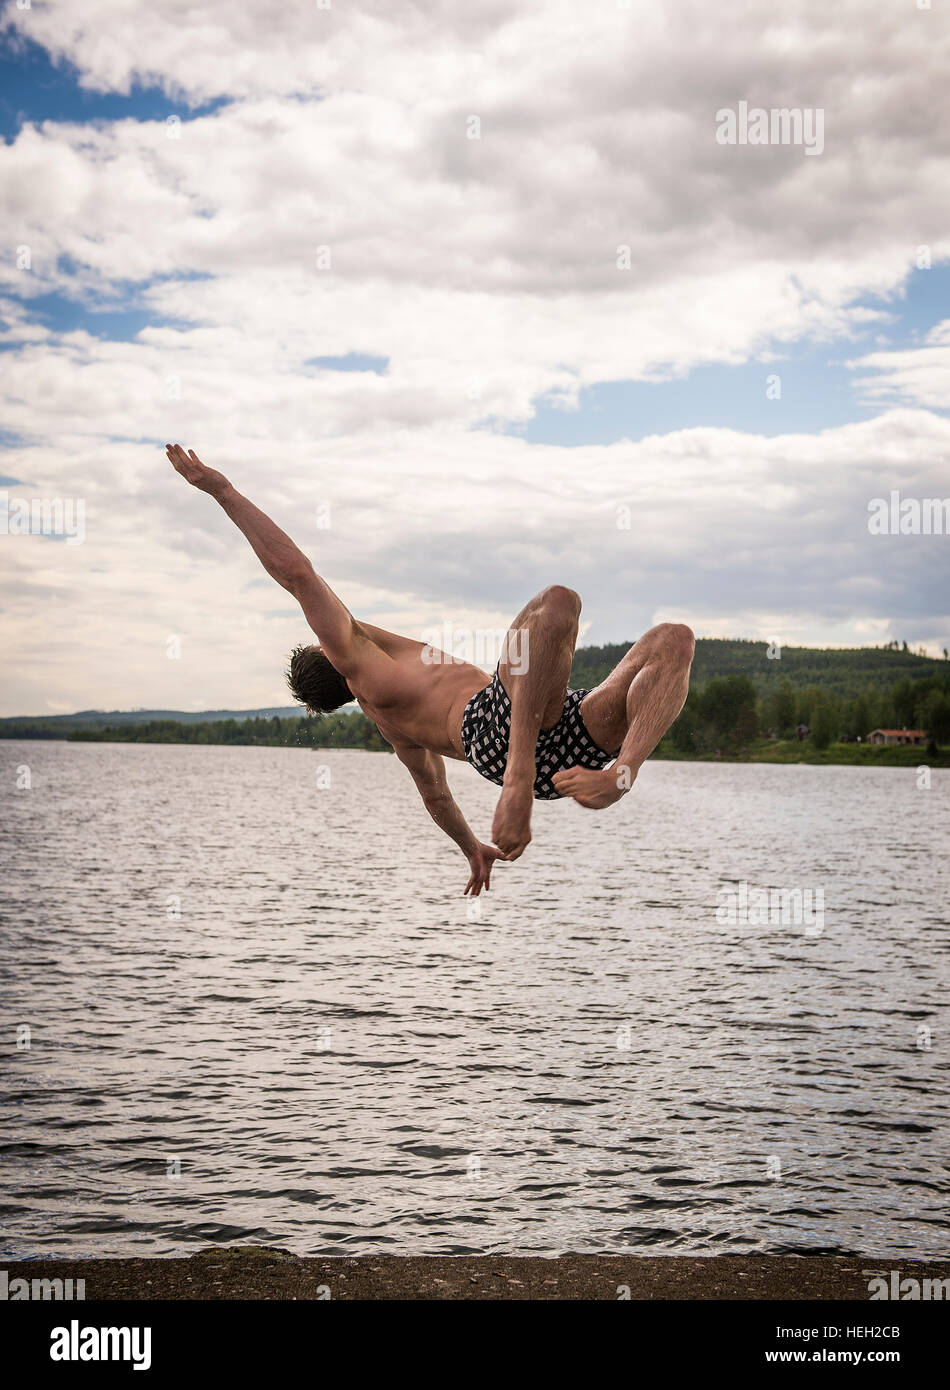 Man jumping into the water in dotted bathing shorts - Stock Image